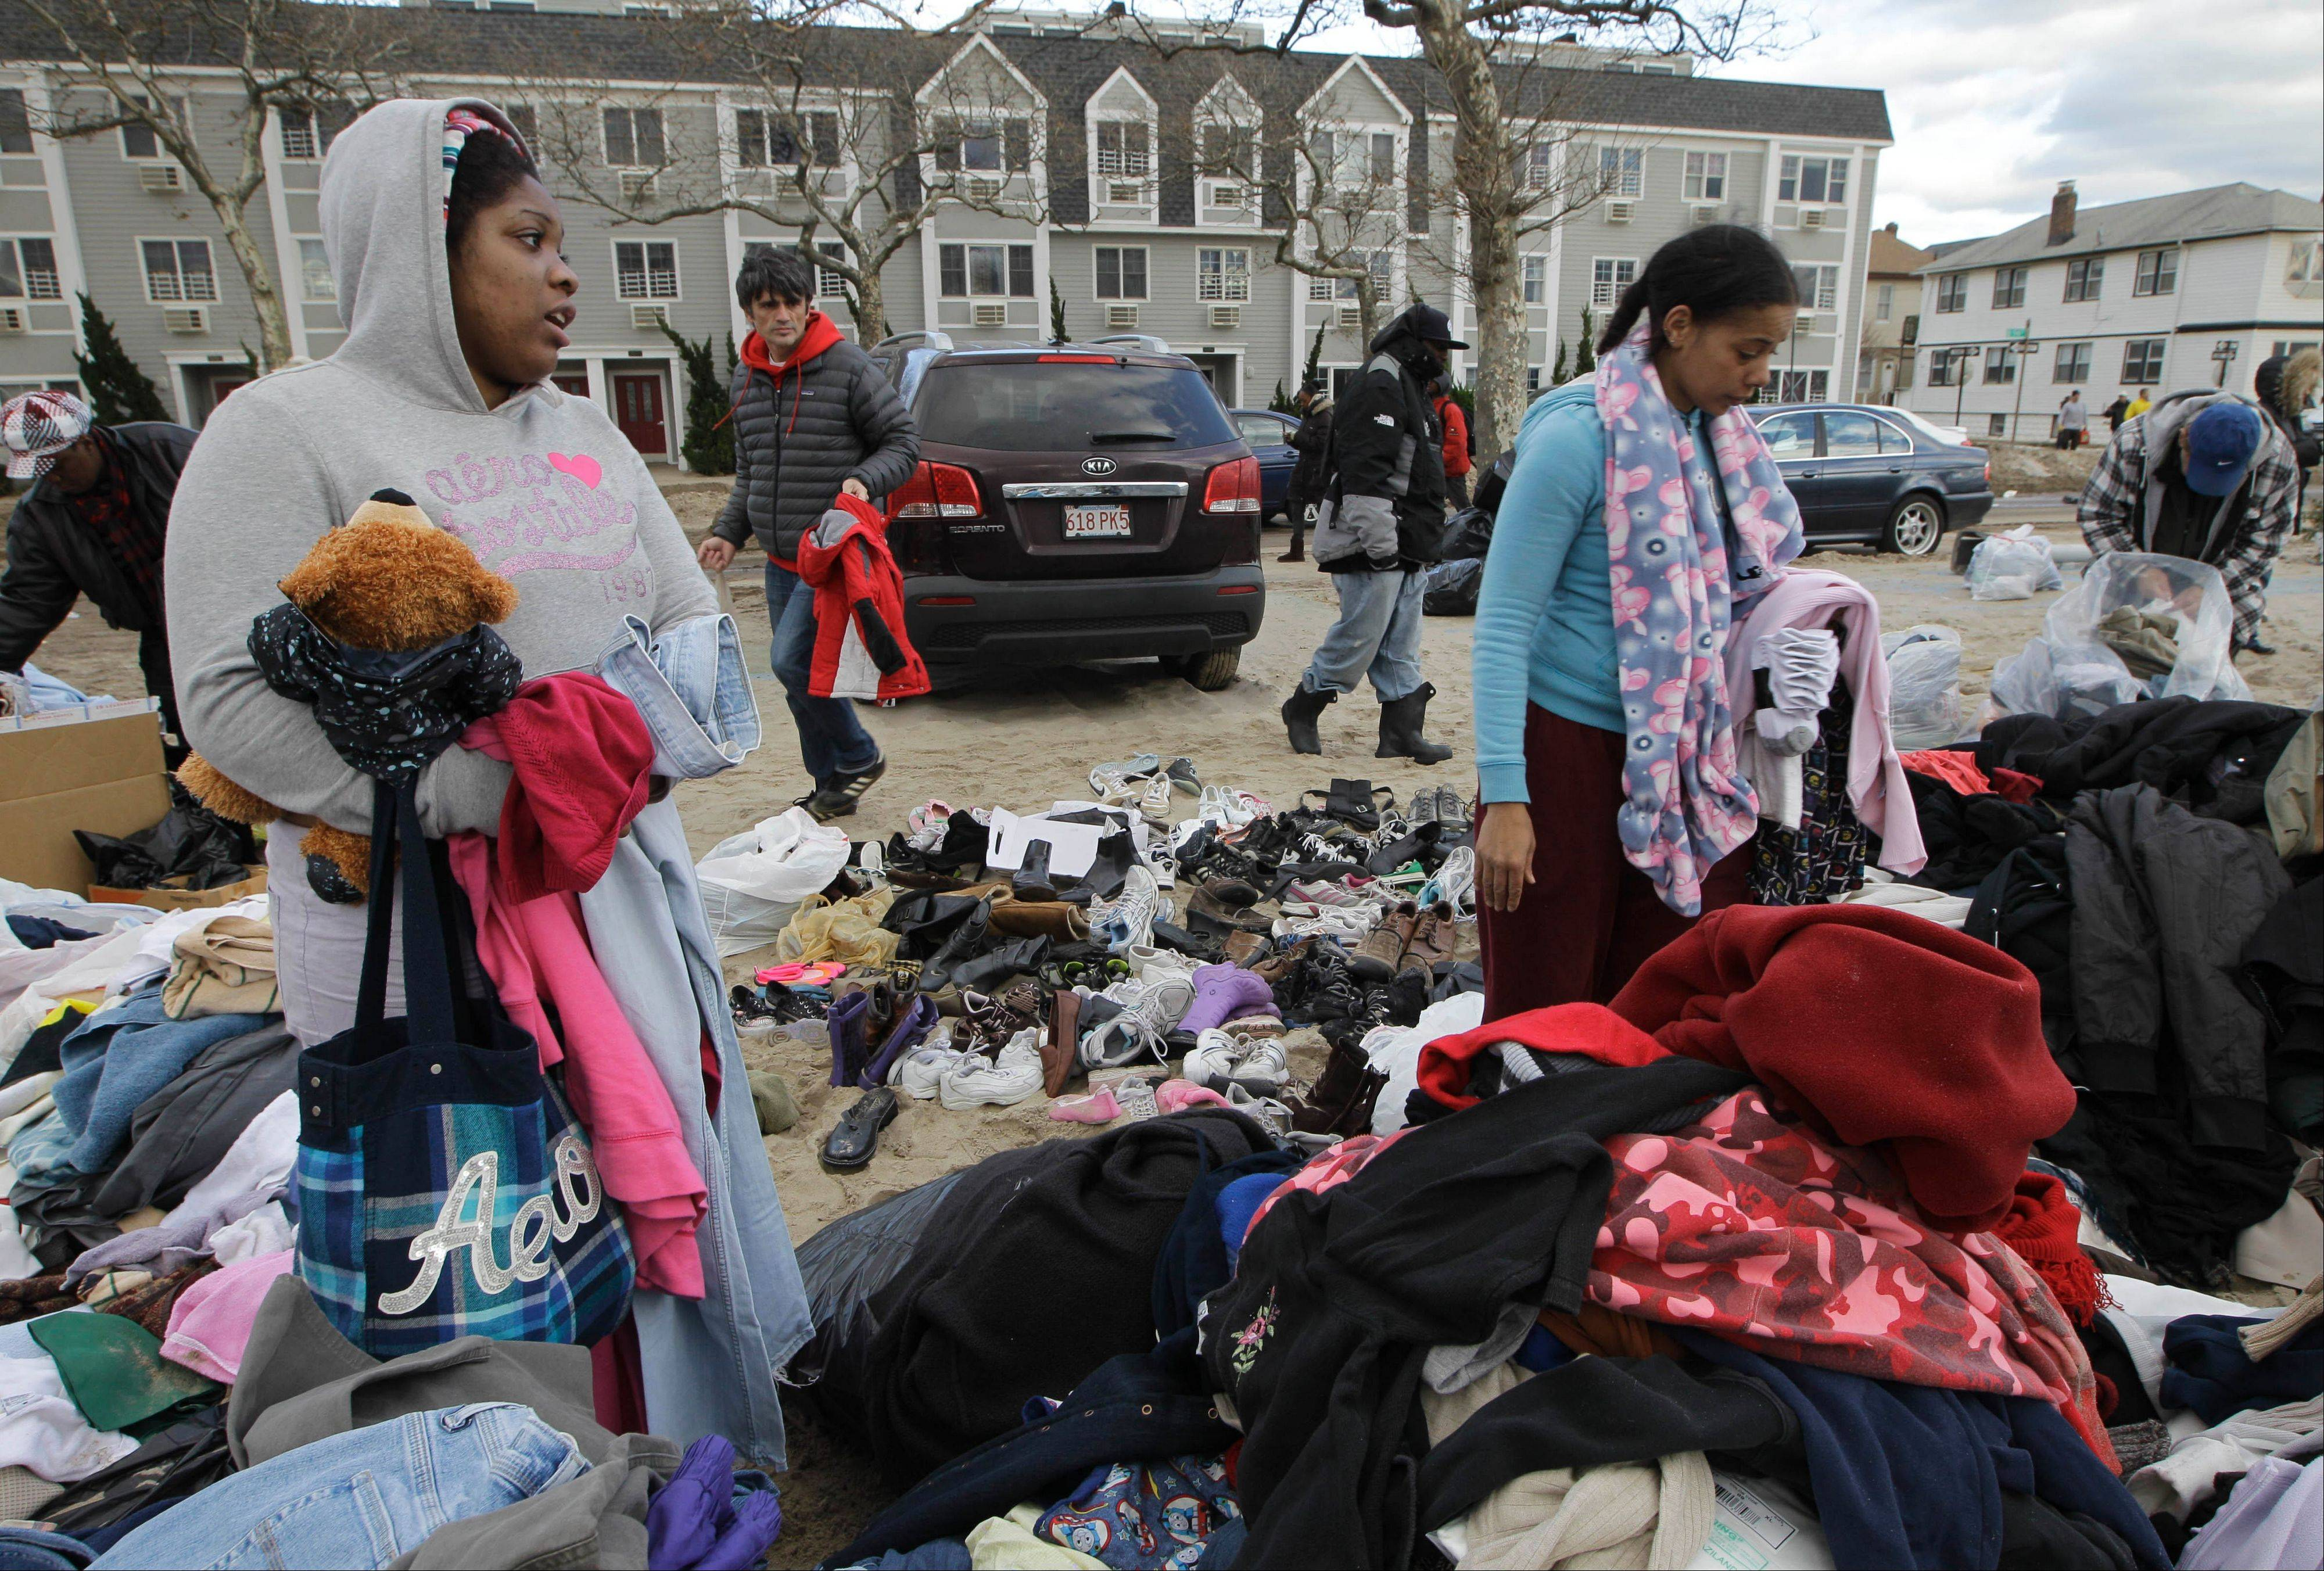 Mecca Traynham, left, and Elena Richardson, right, comb through donated warm and clean clothes, children's toys, and blankets at a distribution point in the Rockaways, a neighborhood that was hit hard and is still without power in the wake of Superstorm Sandy, Saturday, Nov. 3, 2012, in New York.